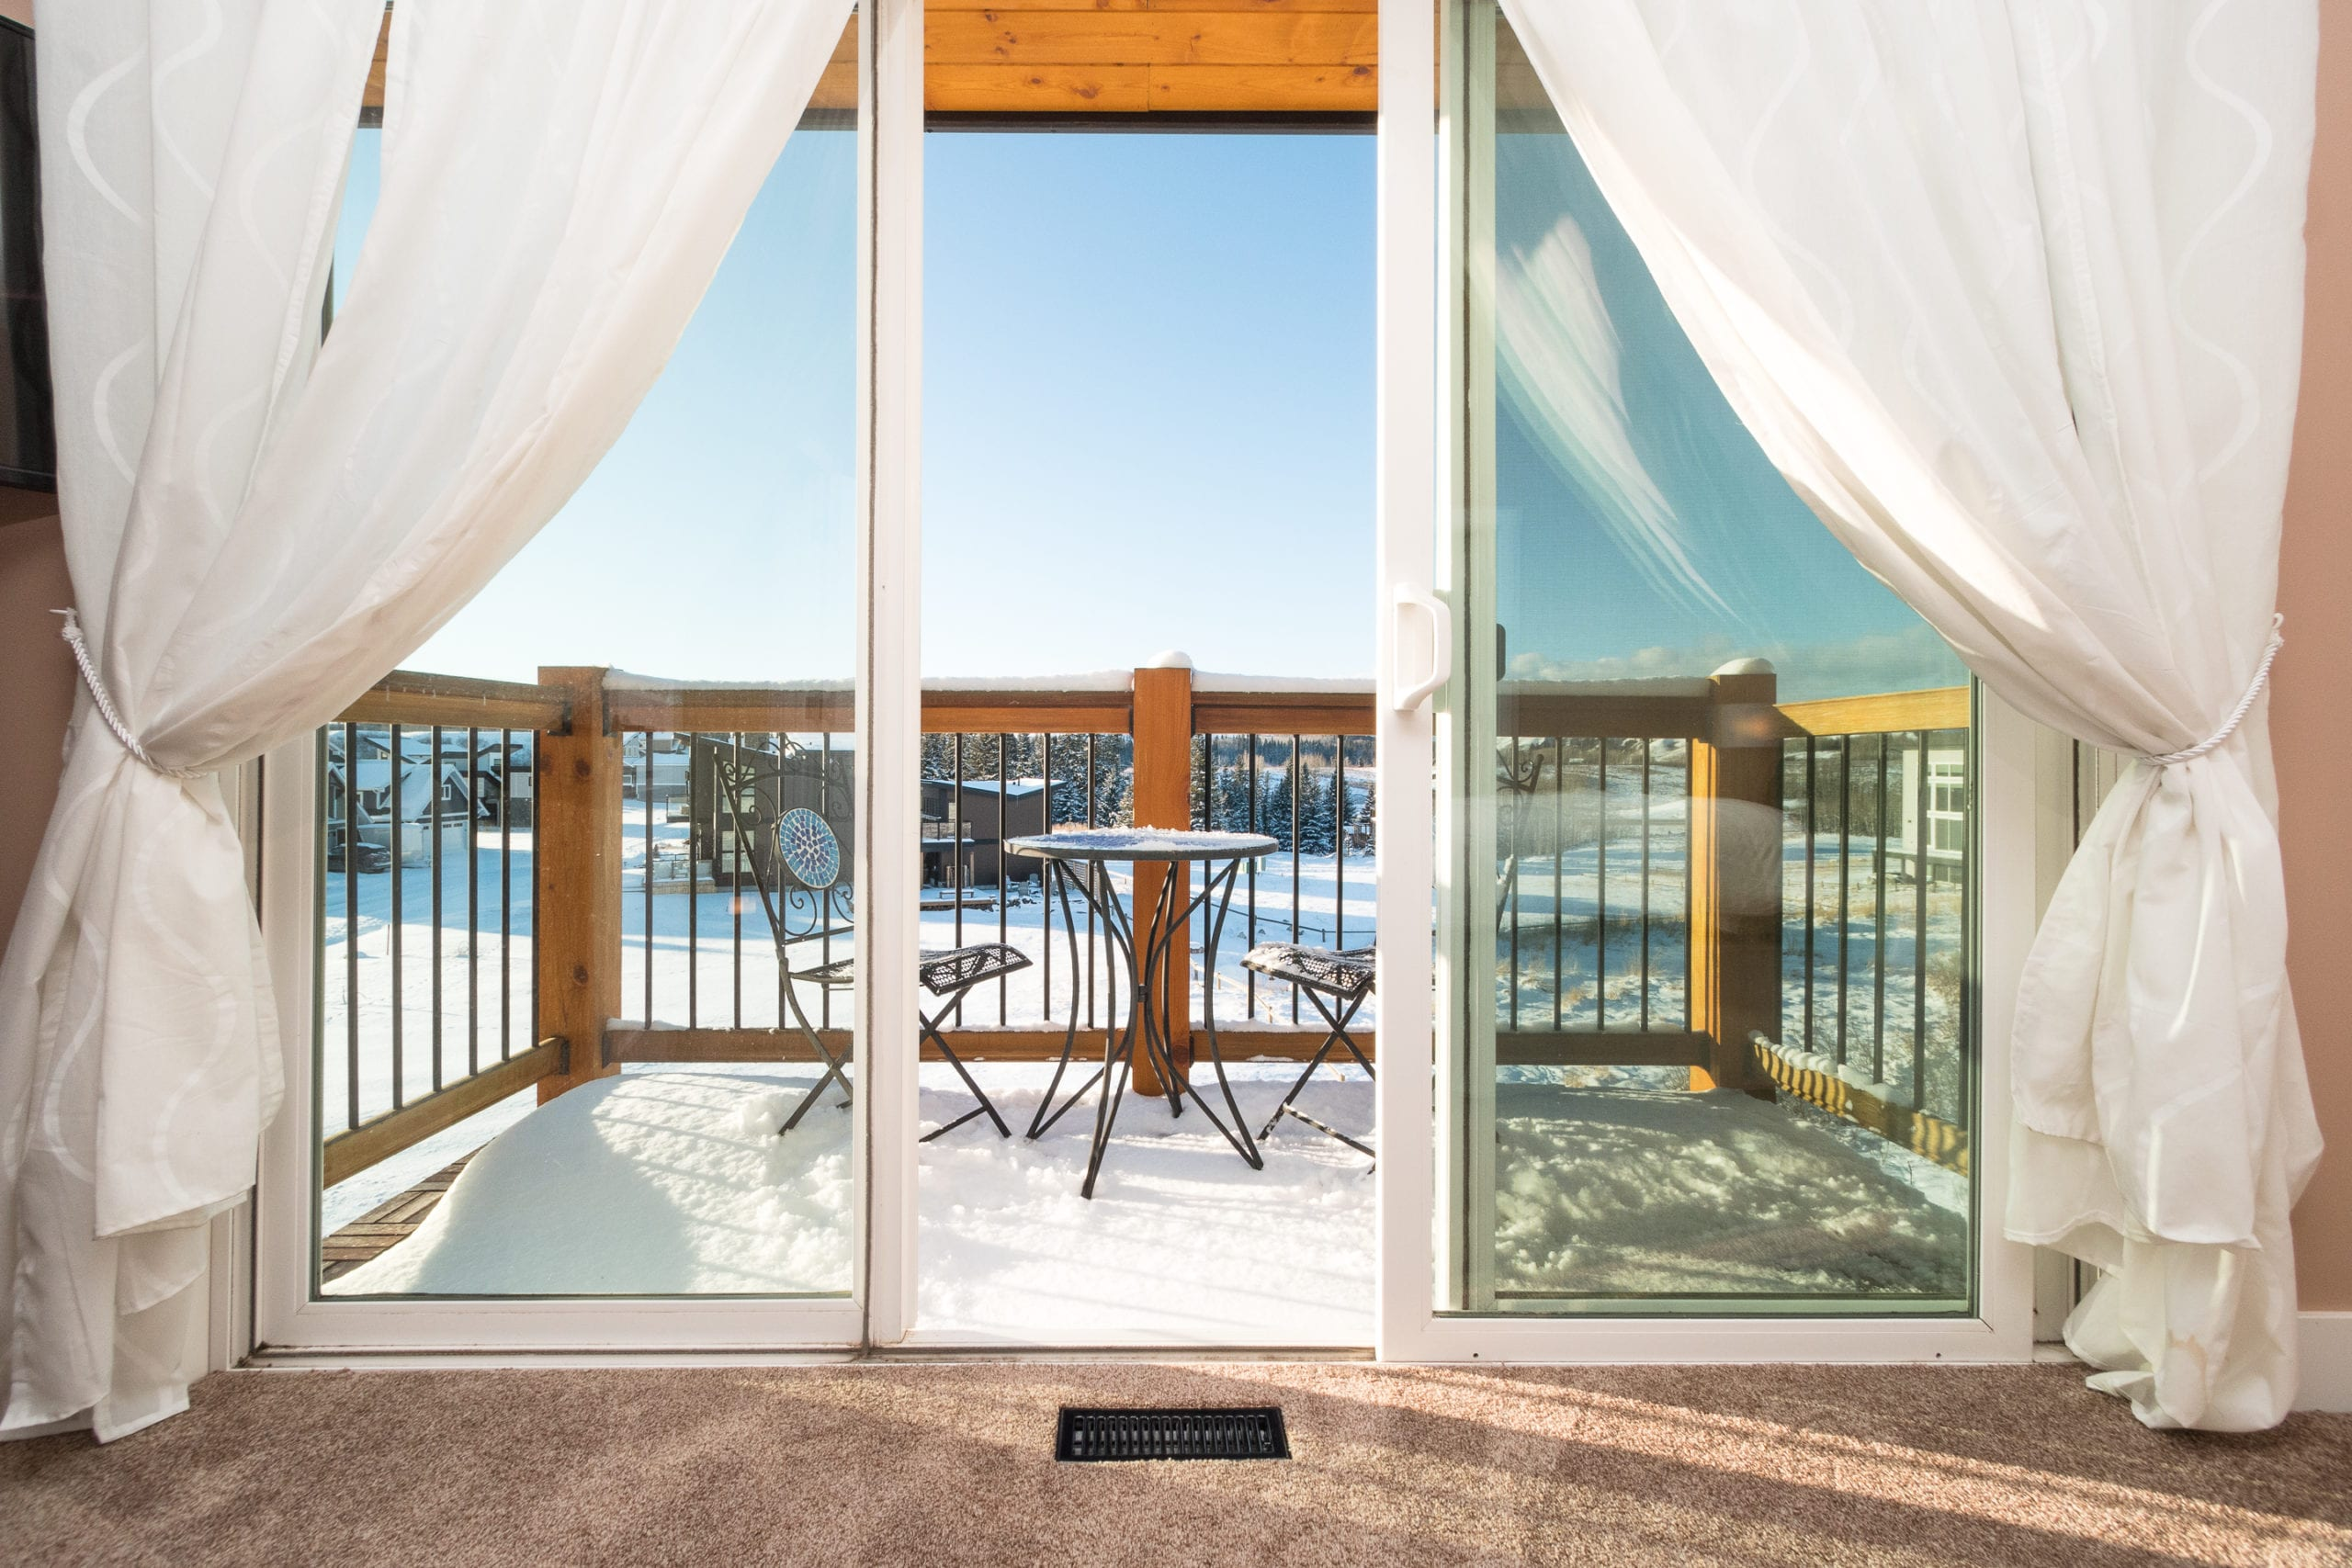 Hello Gorgeous - 456 Cottageclub Cove, Rocky View No. 44, AB - Tara Molina Real Estate (25 of 41)